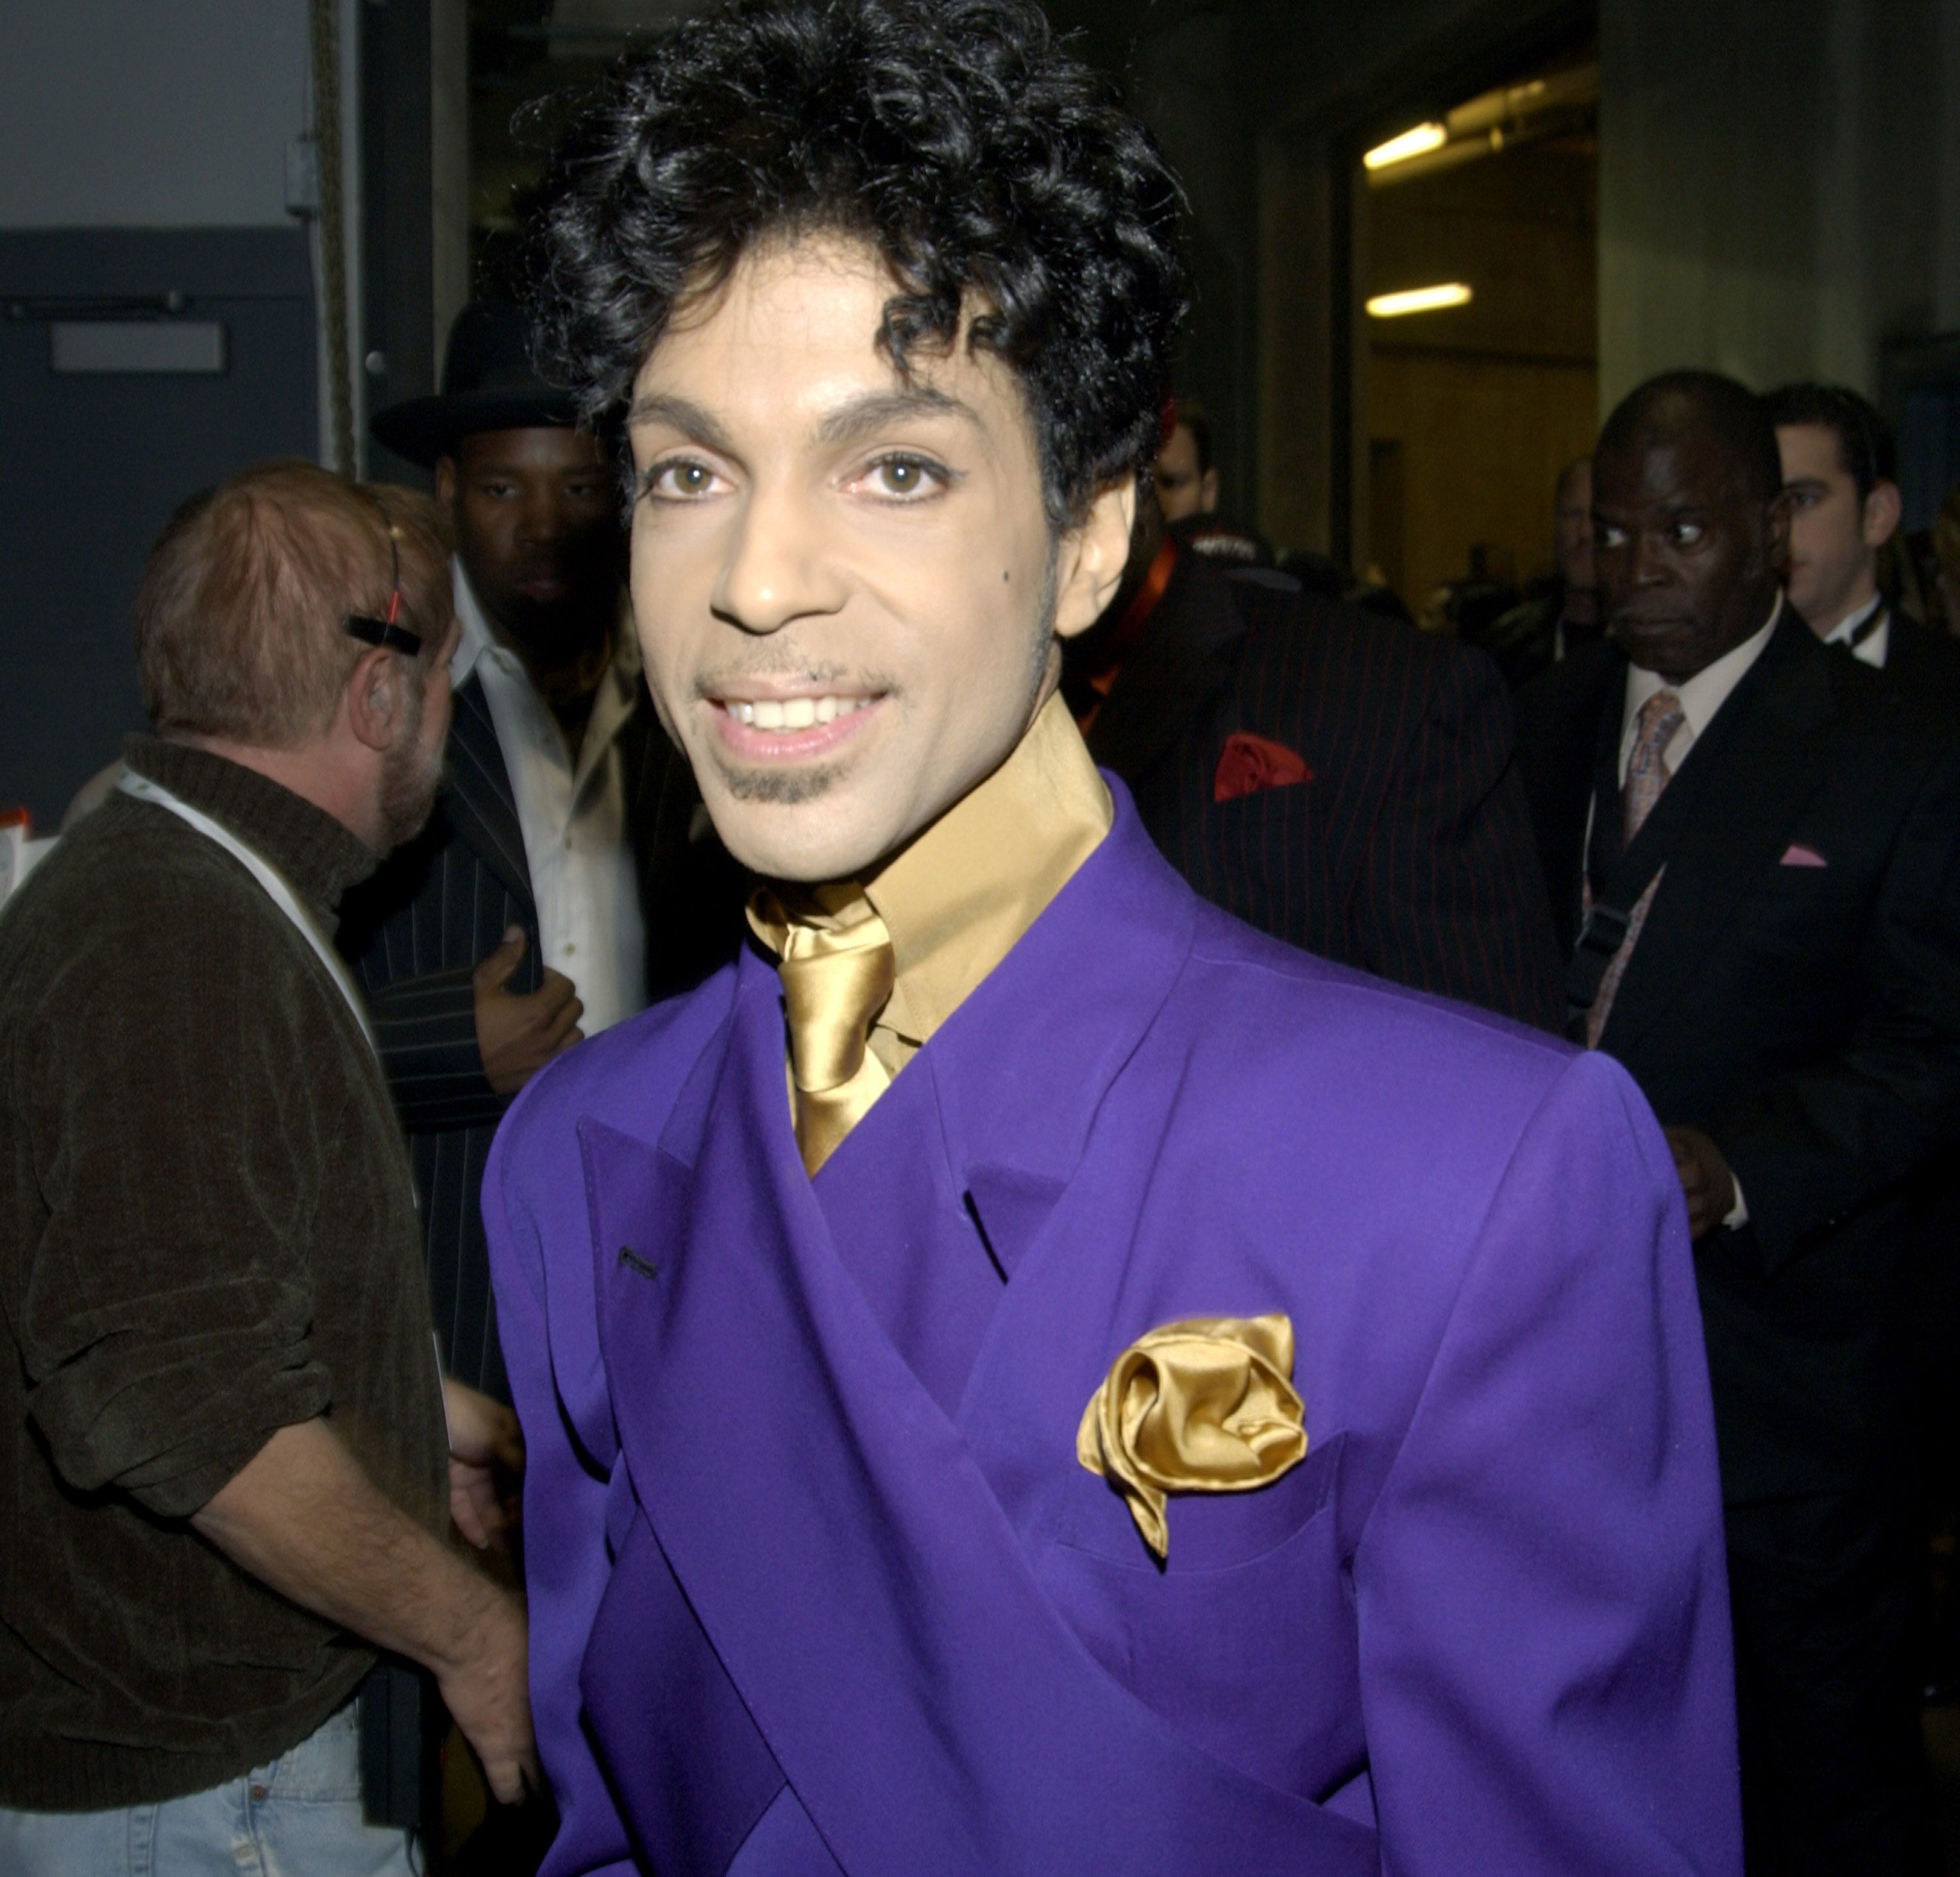 Prince at The 46th Annual GRAMMY Awards - Backstage | Photo: Getty Images